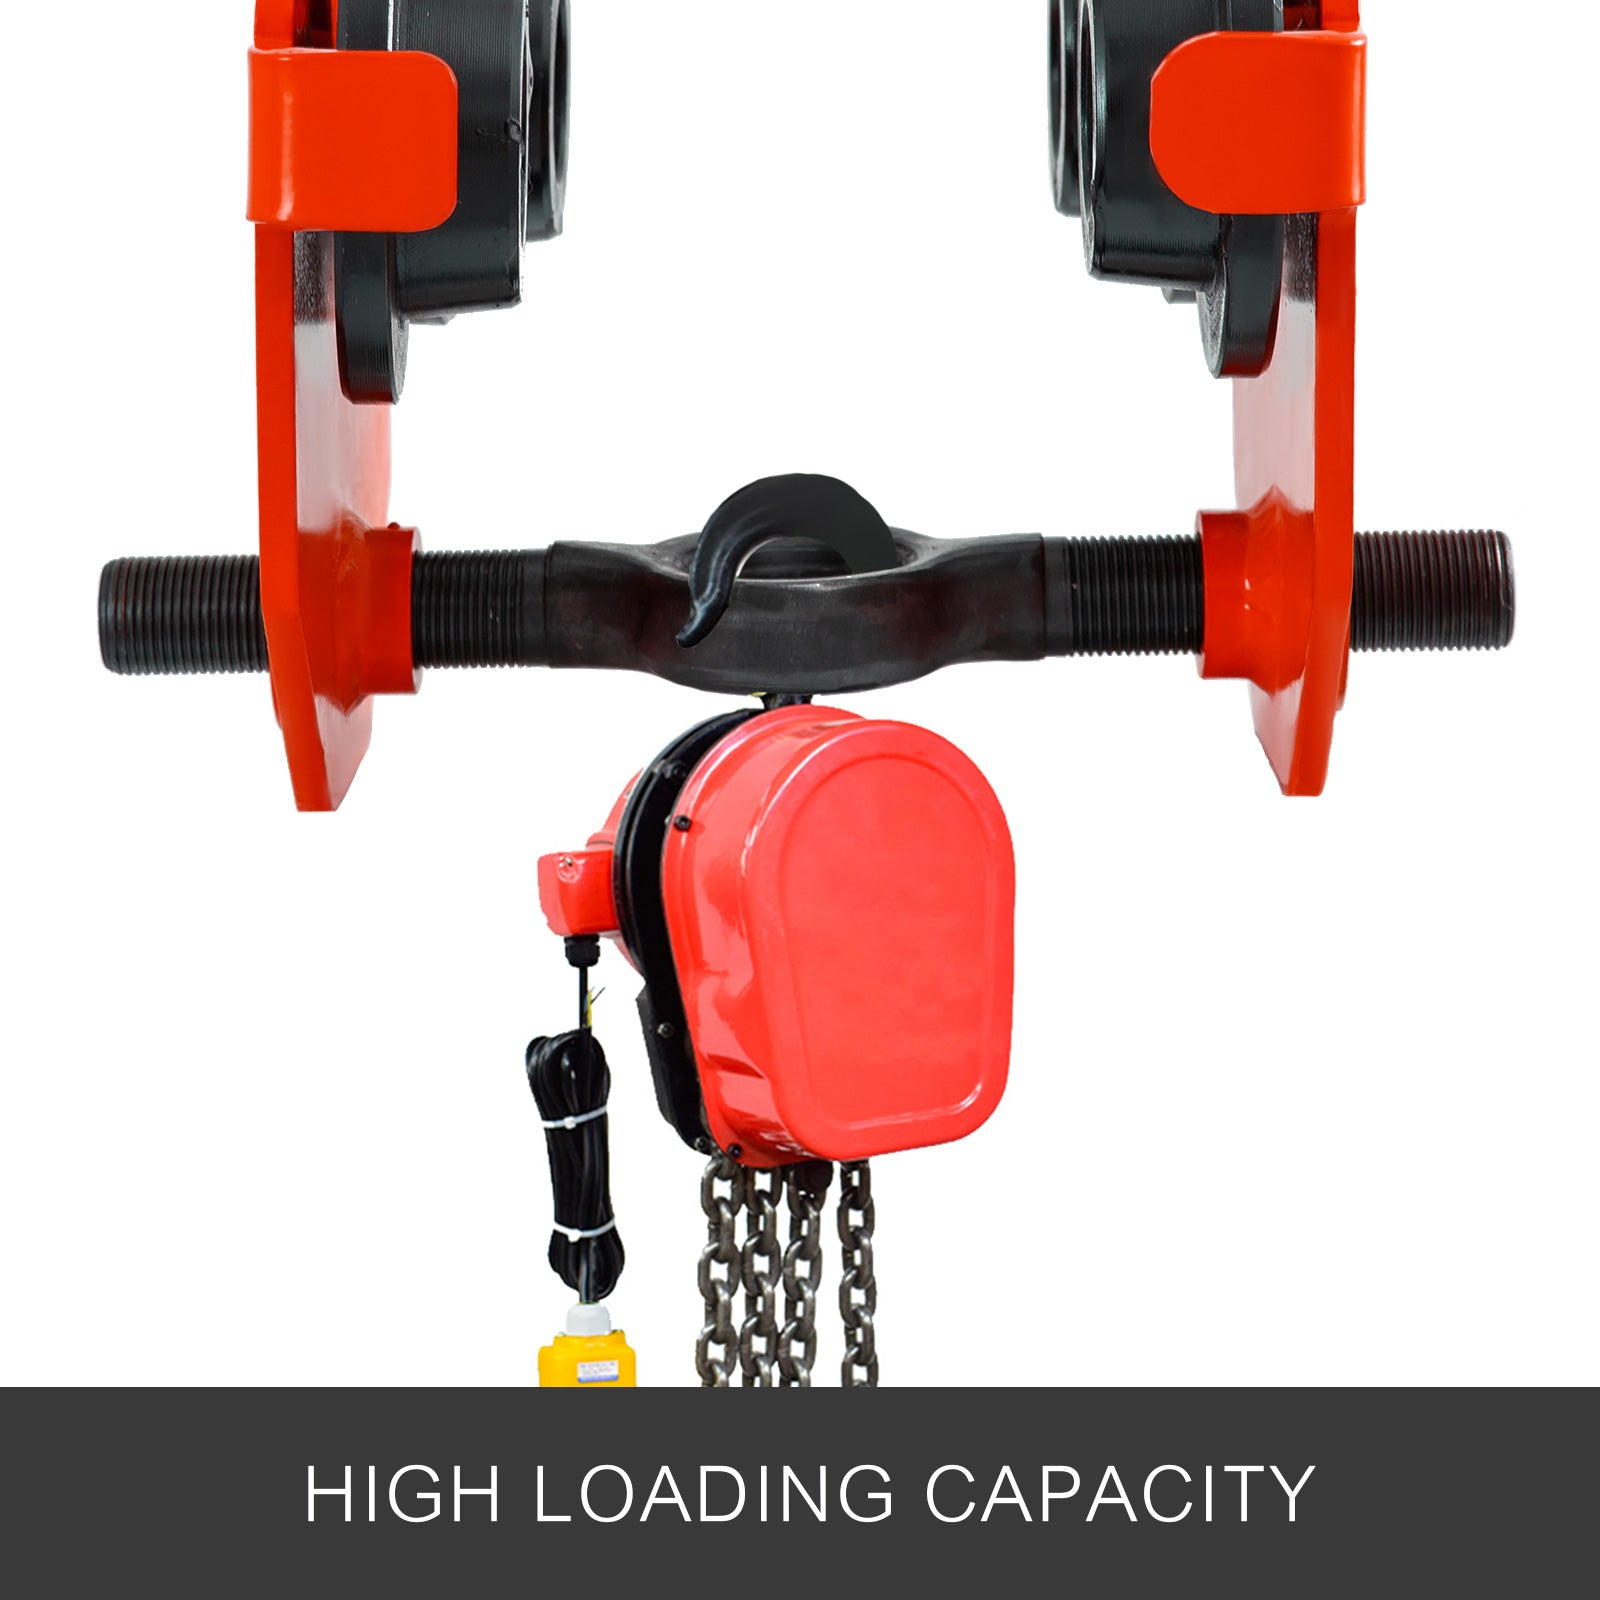 0.5t Push Beam Trolley Manual Roller Trolley Adjustable Low Profile I-beam Track